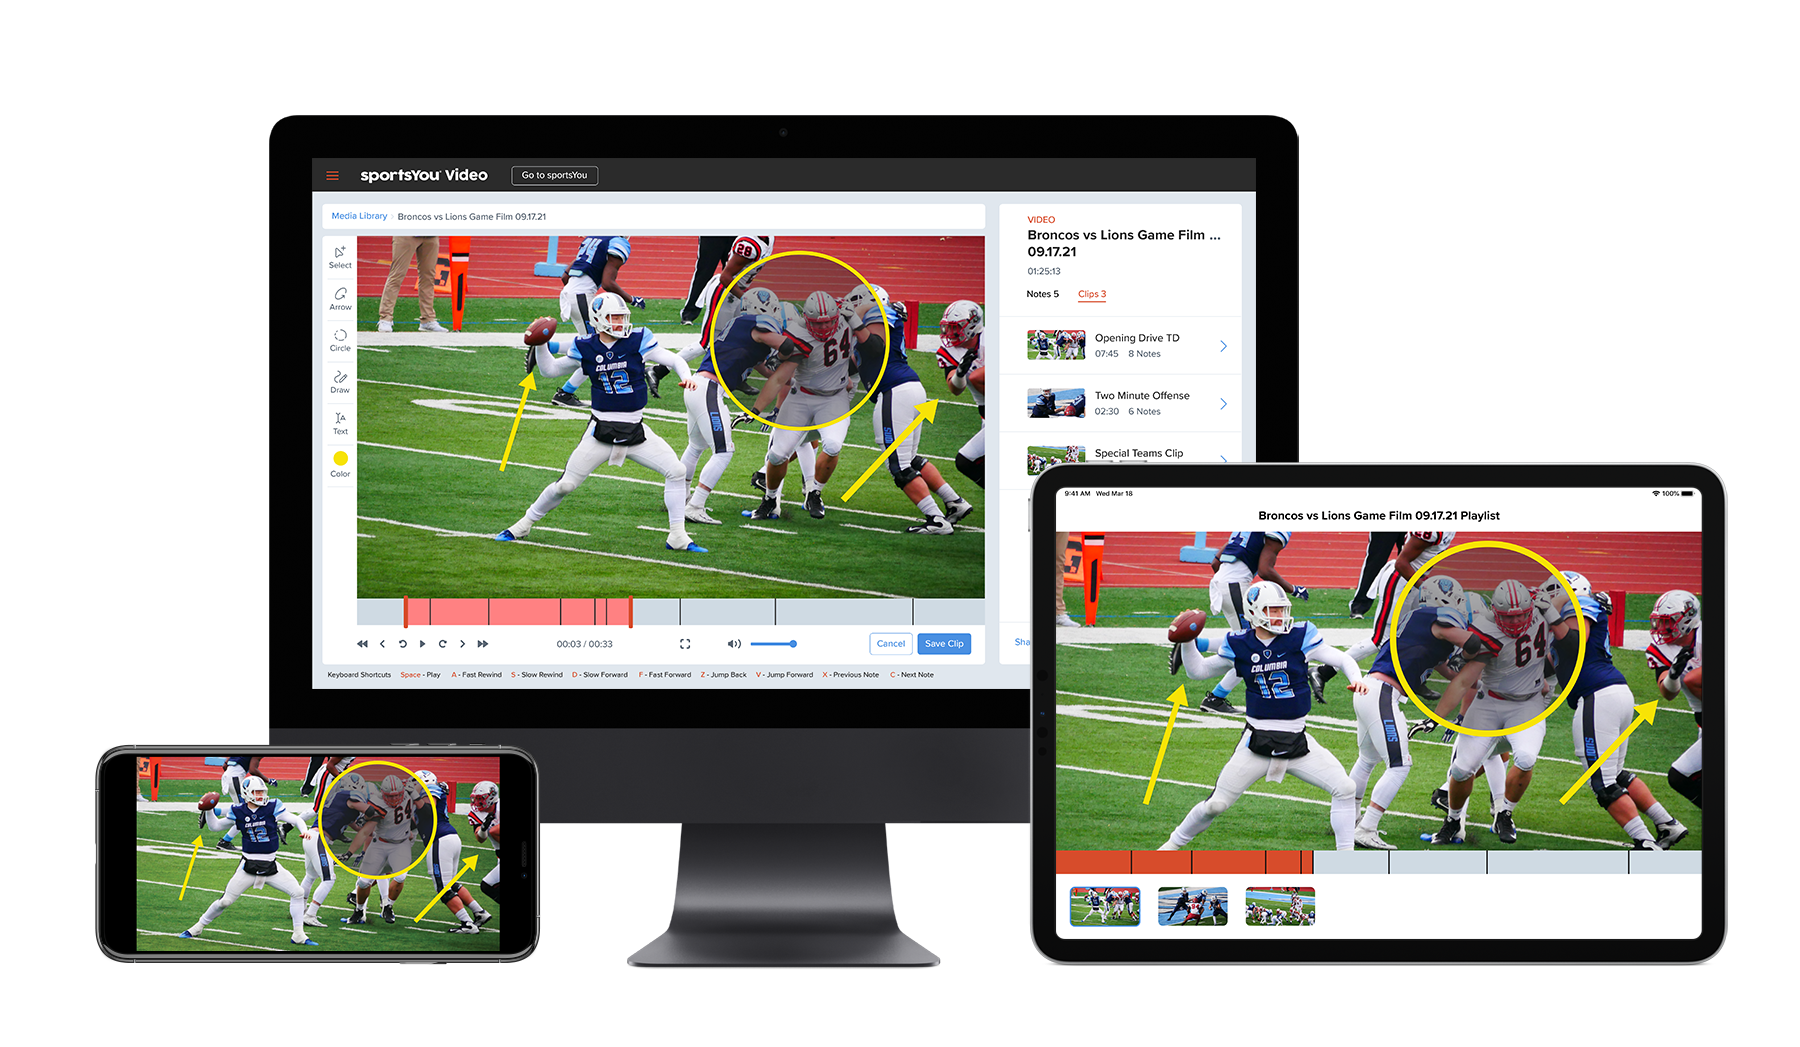 sportsYou Video app on different devices.